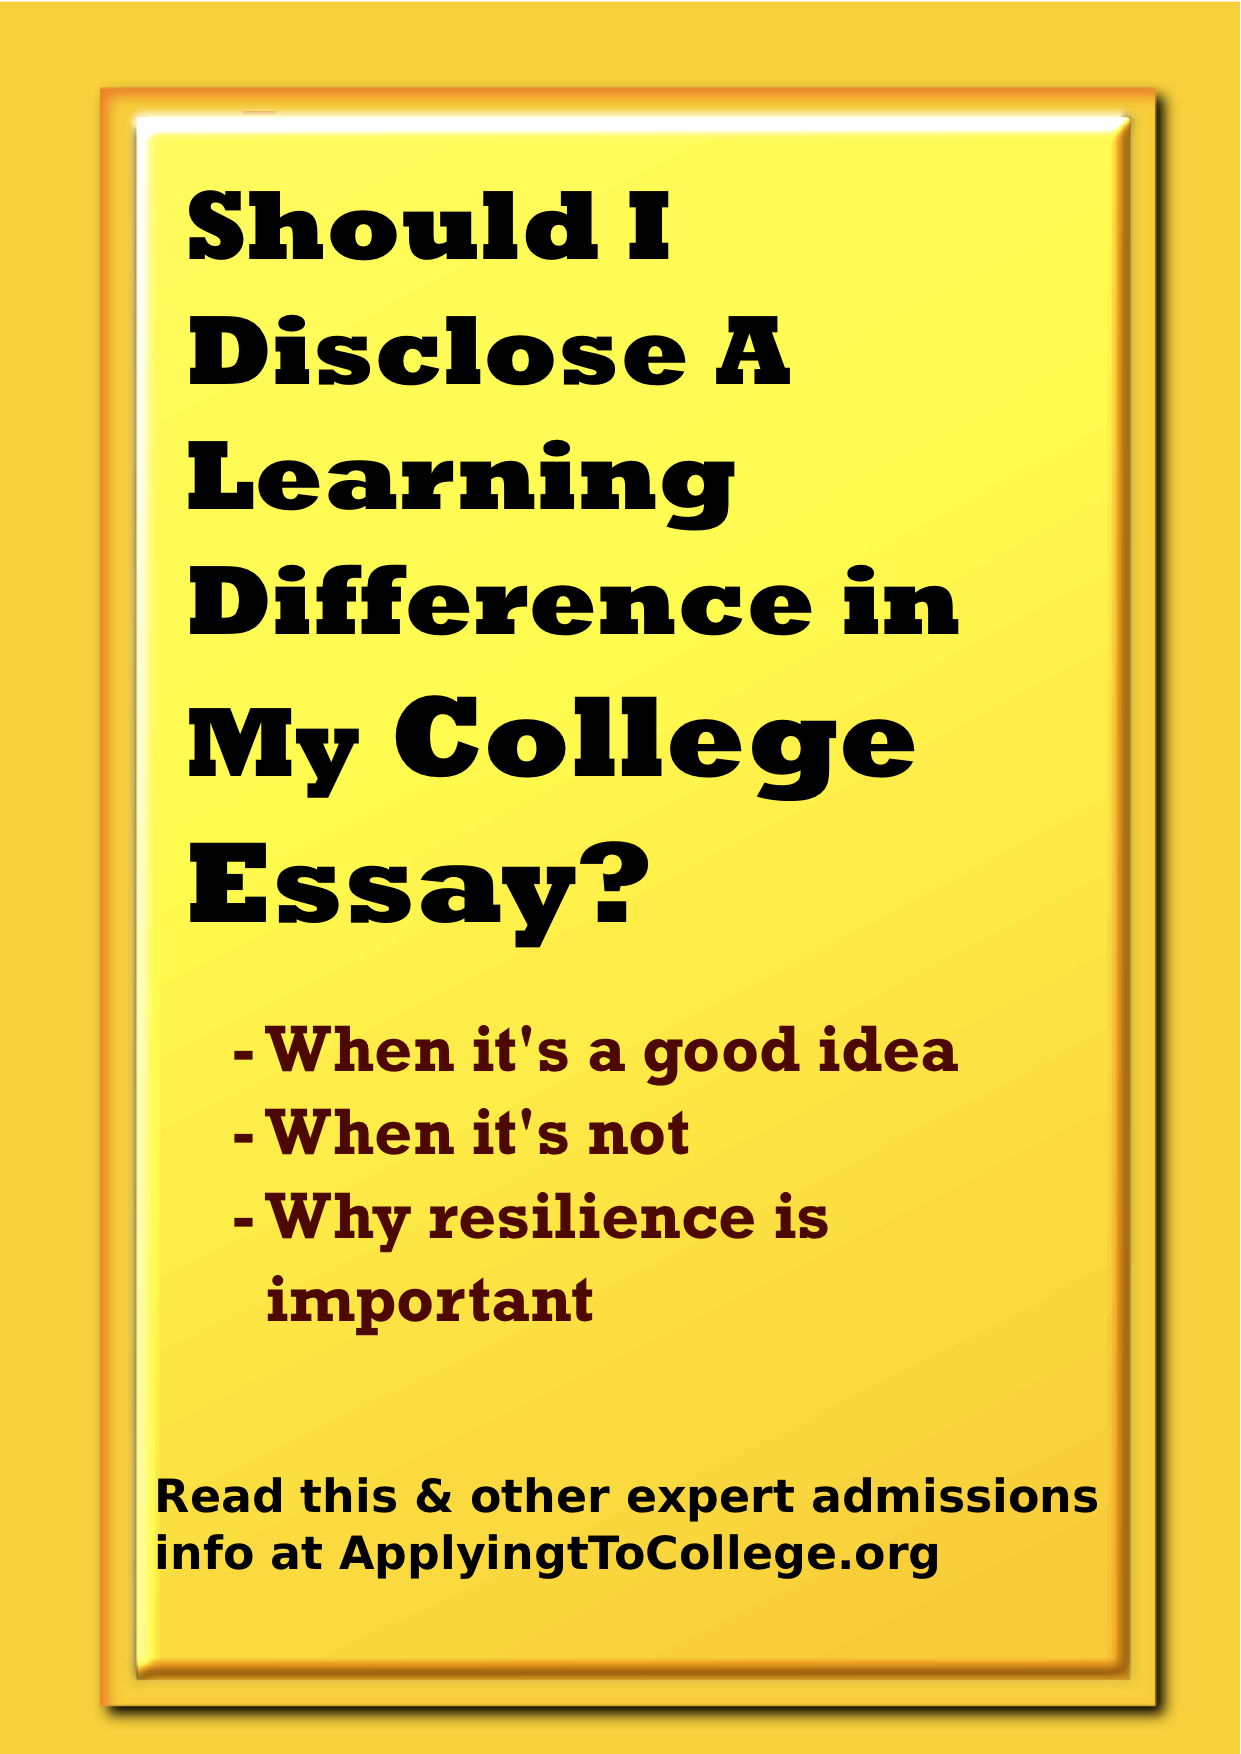 ... Need Help Writing My College Admissions Essay, Write My Essay Online